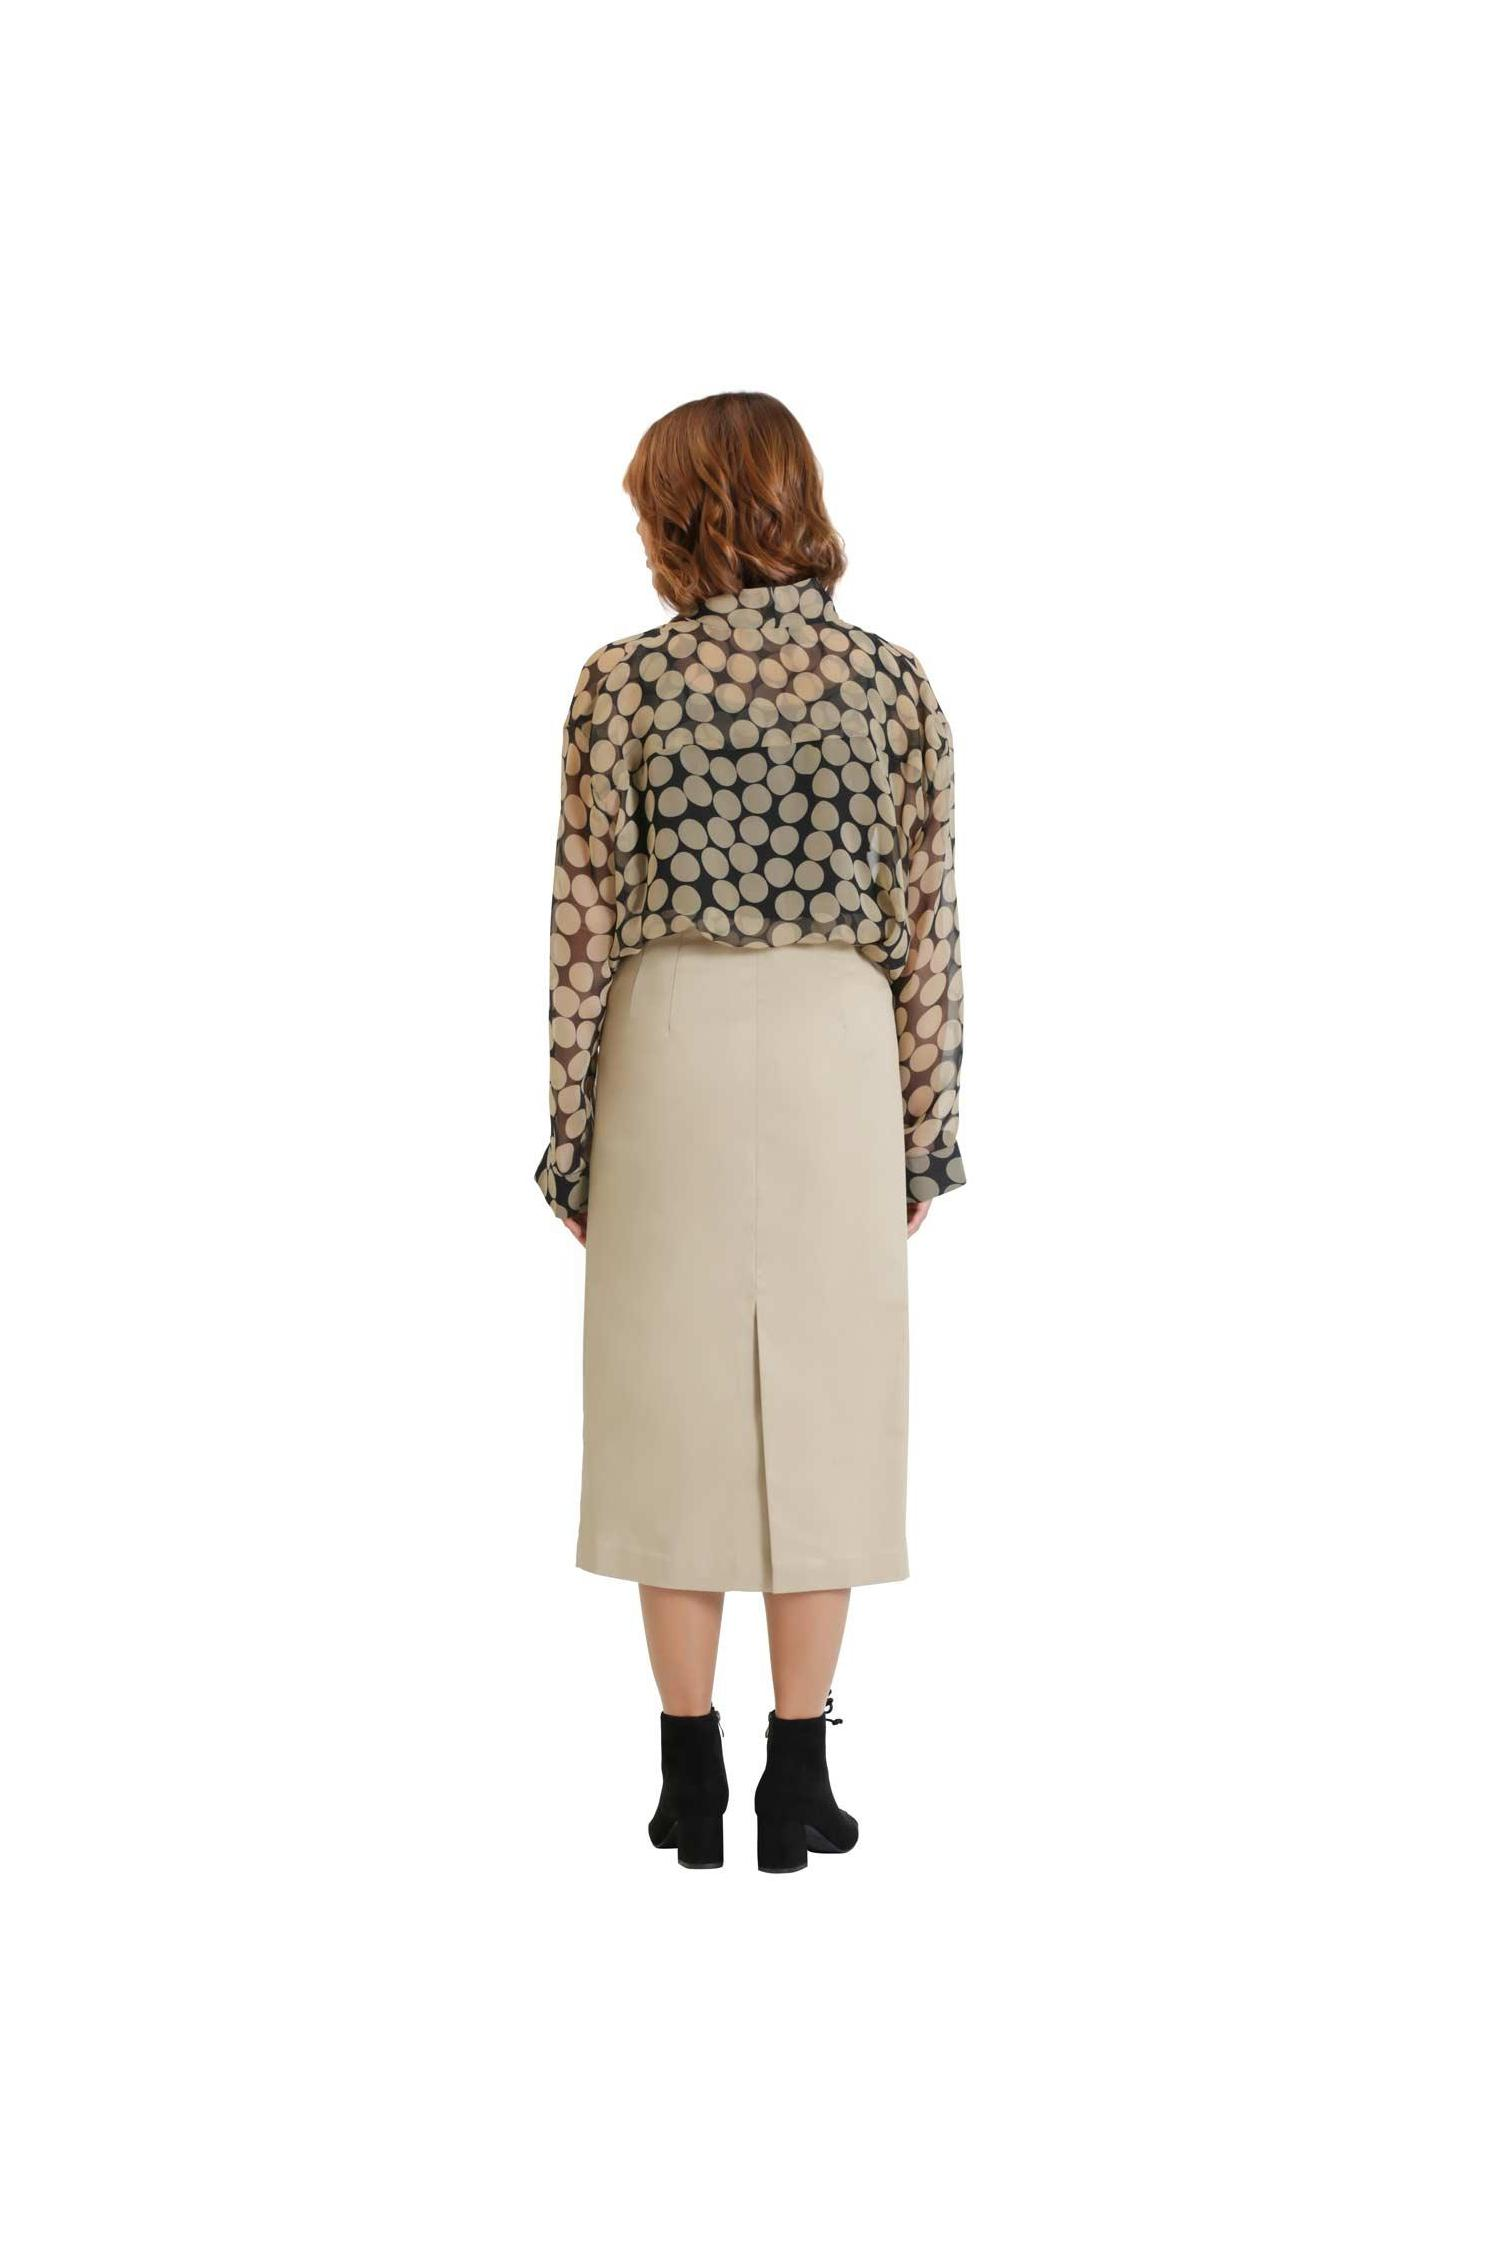 Beige cotton pencil skirt